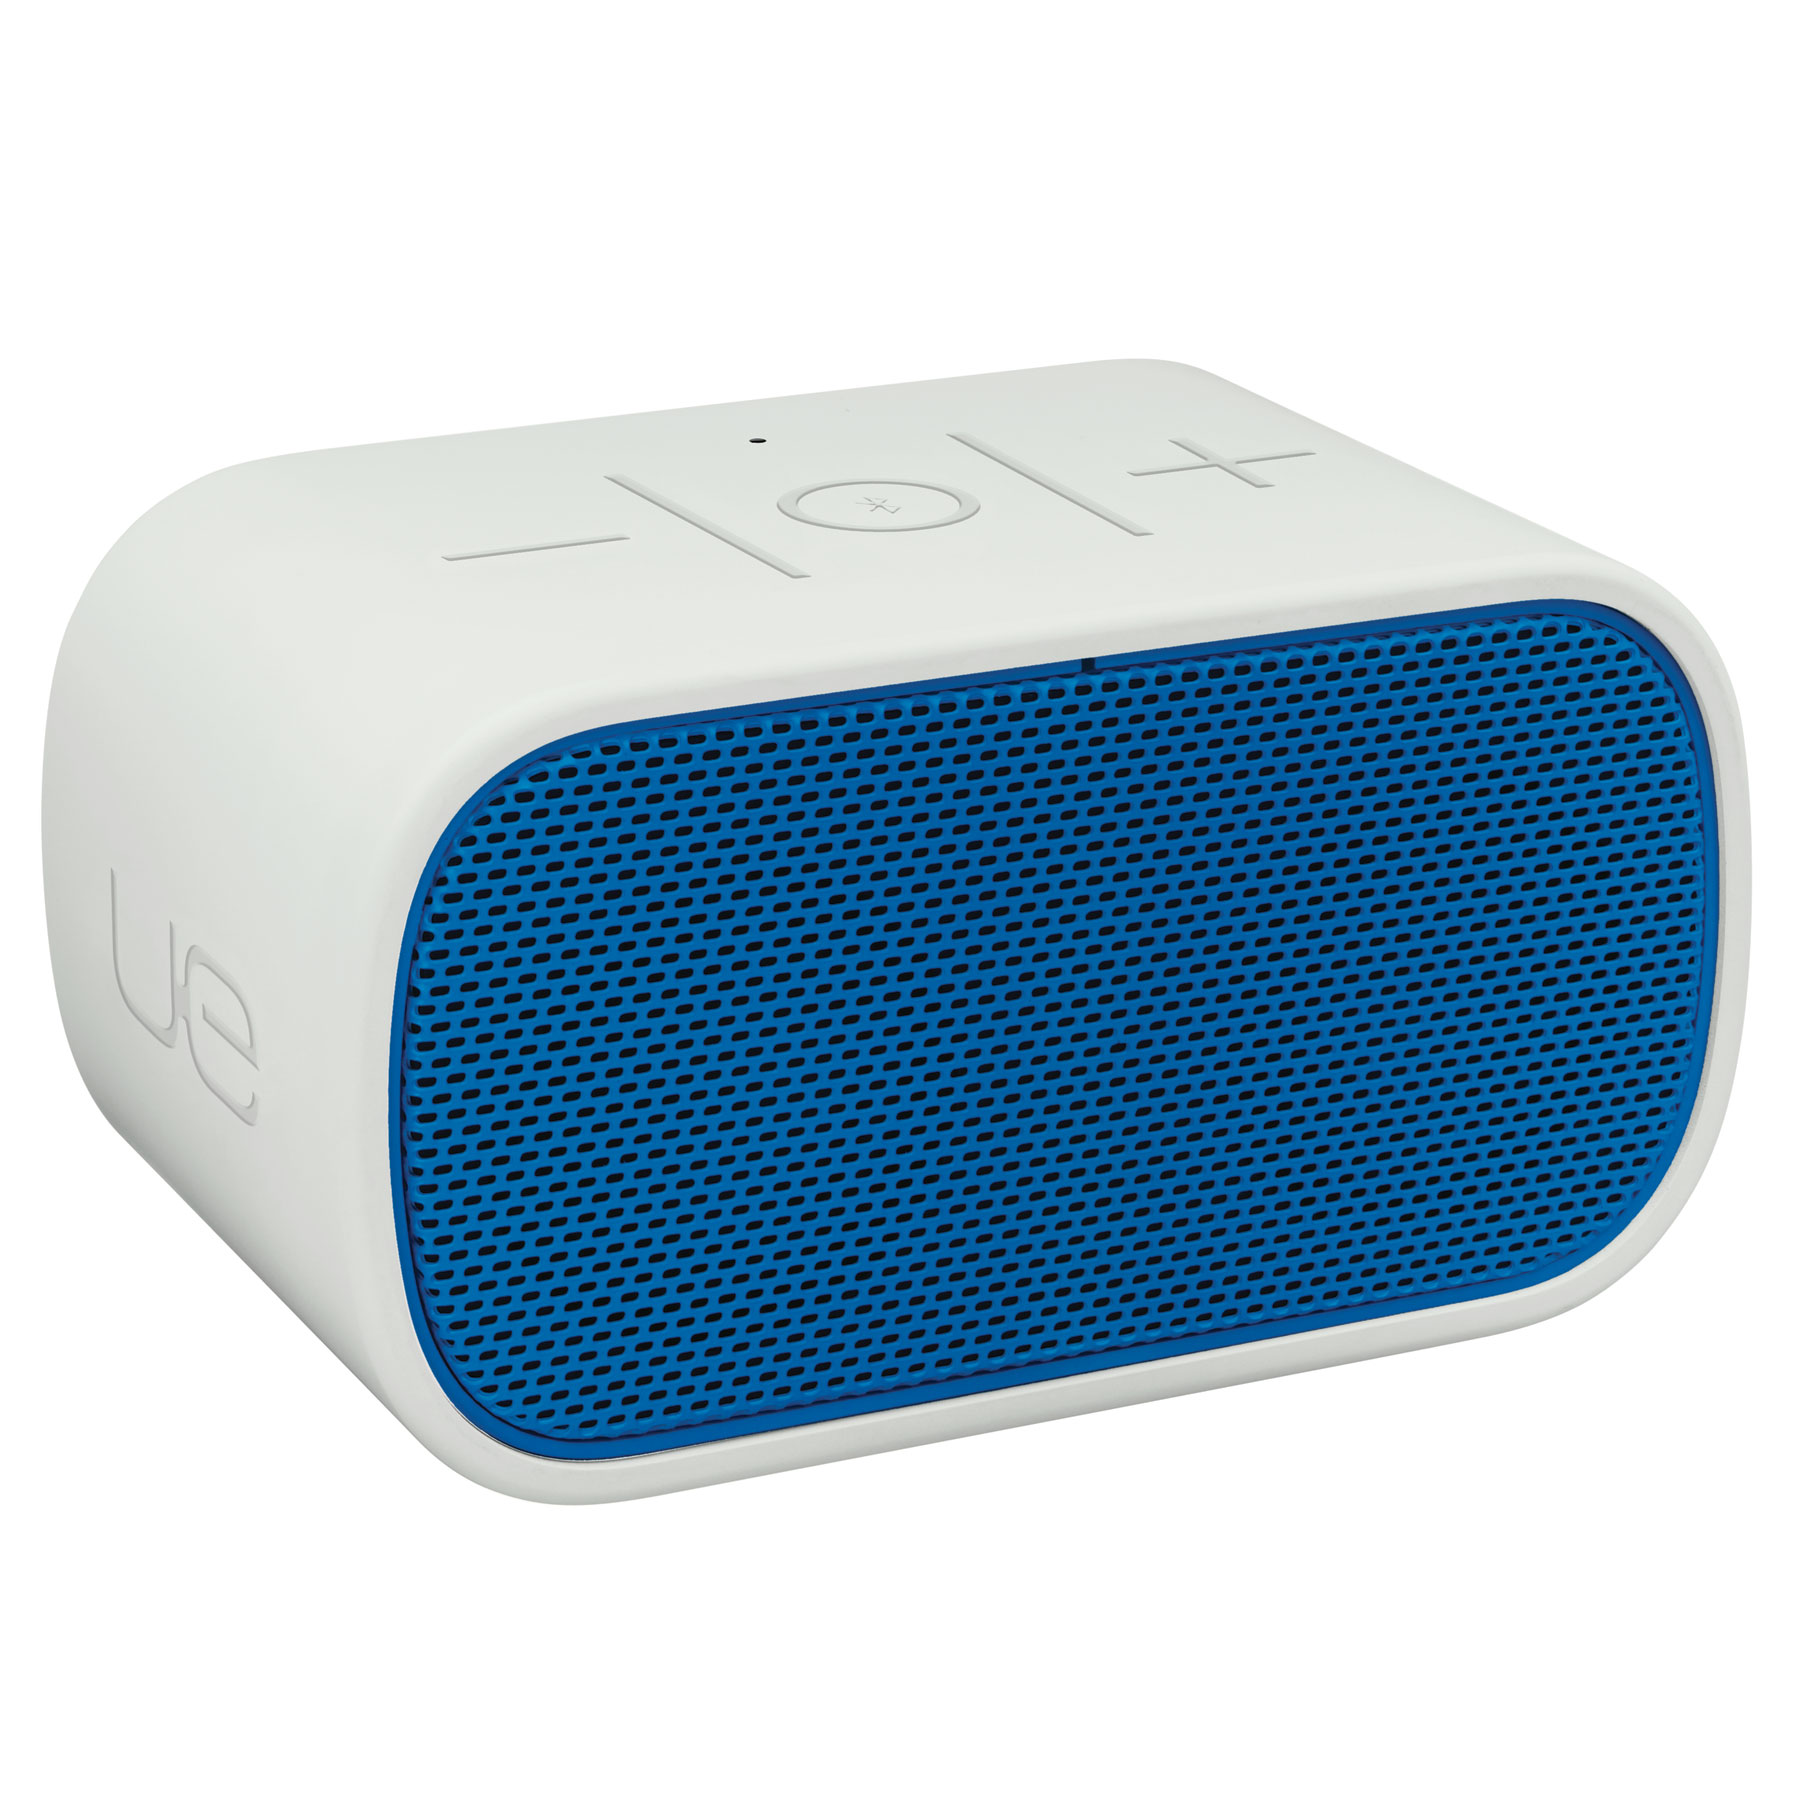 logitech ue mobile boombox bleu blanc dock enceinte bluetooth logitech sur. Black Bedroom Furniture Sets. Home Design Ideas